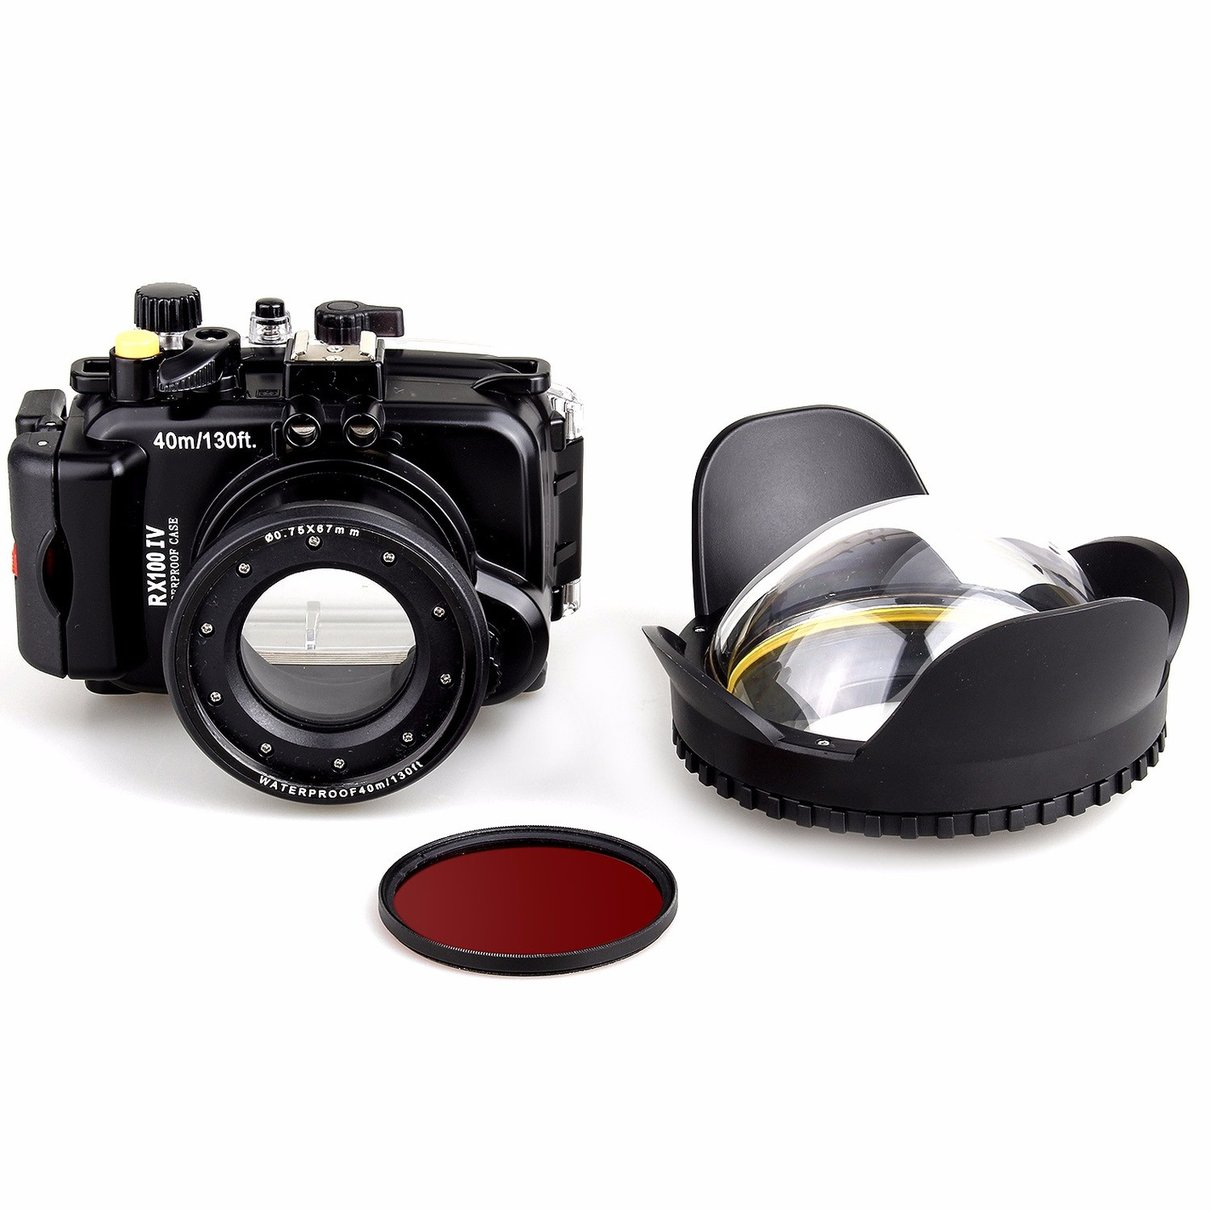 40M Underwater Waterproof Camera Housing Diving Case for Sony DSC RX100 IV RX100 M4 + Red Filter 67mm + 67mm Fisheye Lens ruuhee sexy halter one piece swimsuit swimwear bodysuit women push up bathing suit monokini maillot de bain femme bikini set